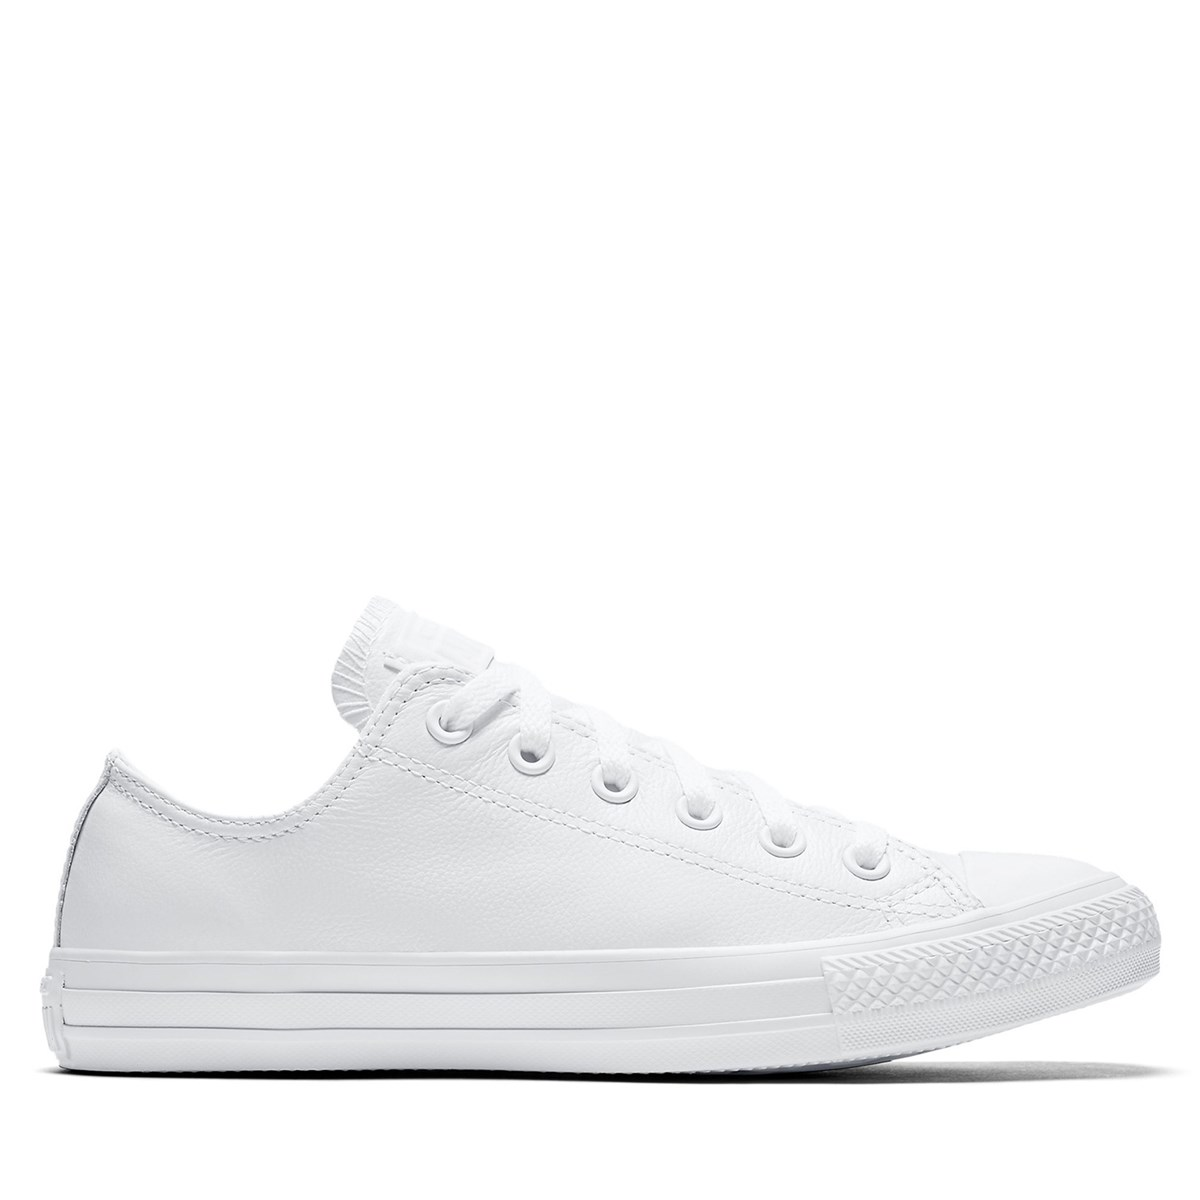 90cd78bc8a8021 Chuck Taylor All Star Mono Leather Low Top Sneaker. Previous. default view  · ALT1 · ALT2